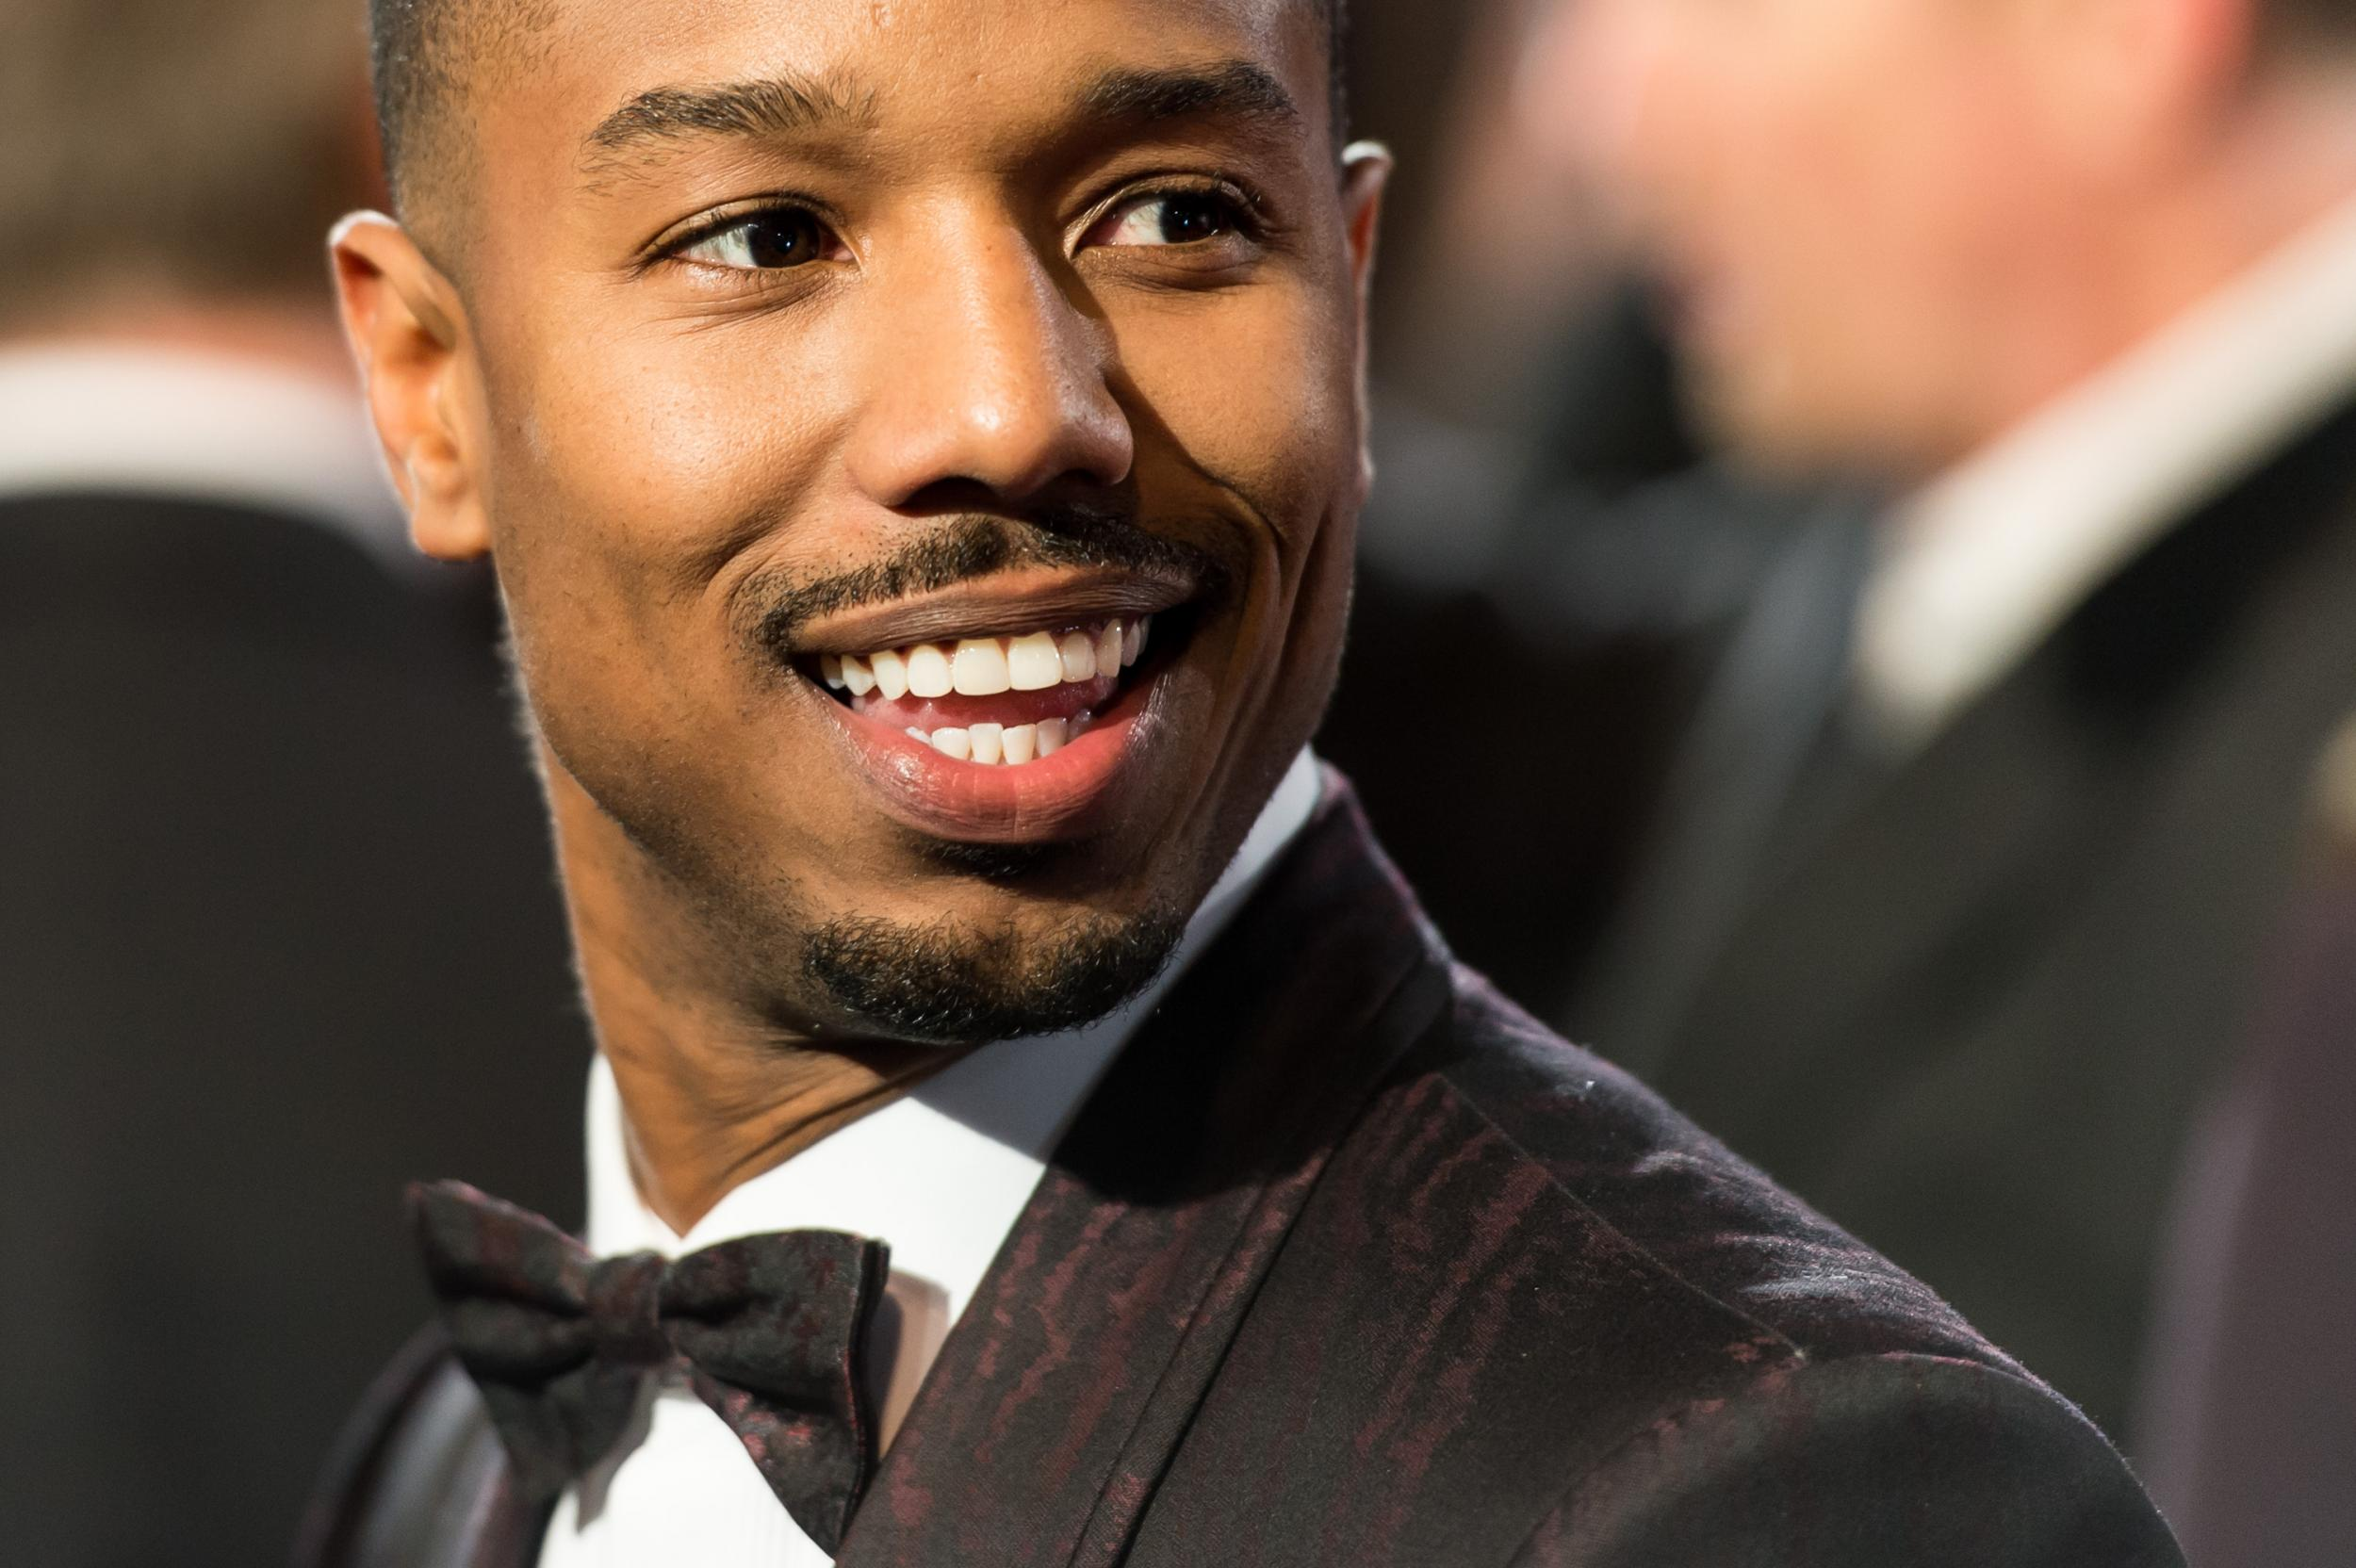 Michael Bakari Jordan born February 9 1987 is an American actor He is known for his film roles as shooting victim Oscar Grant in the drama Fruitvale Station 2013